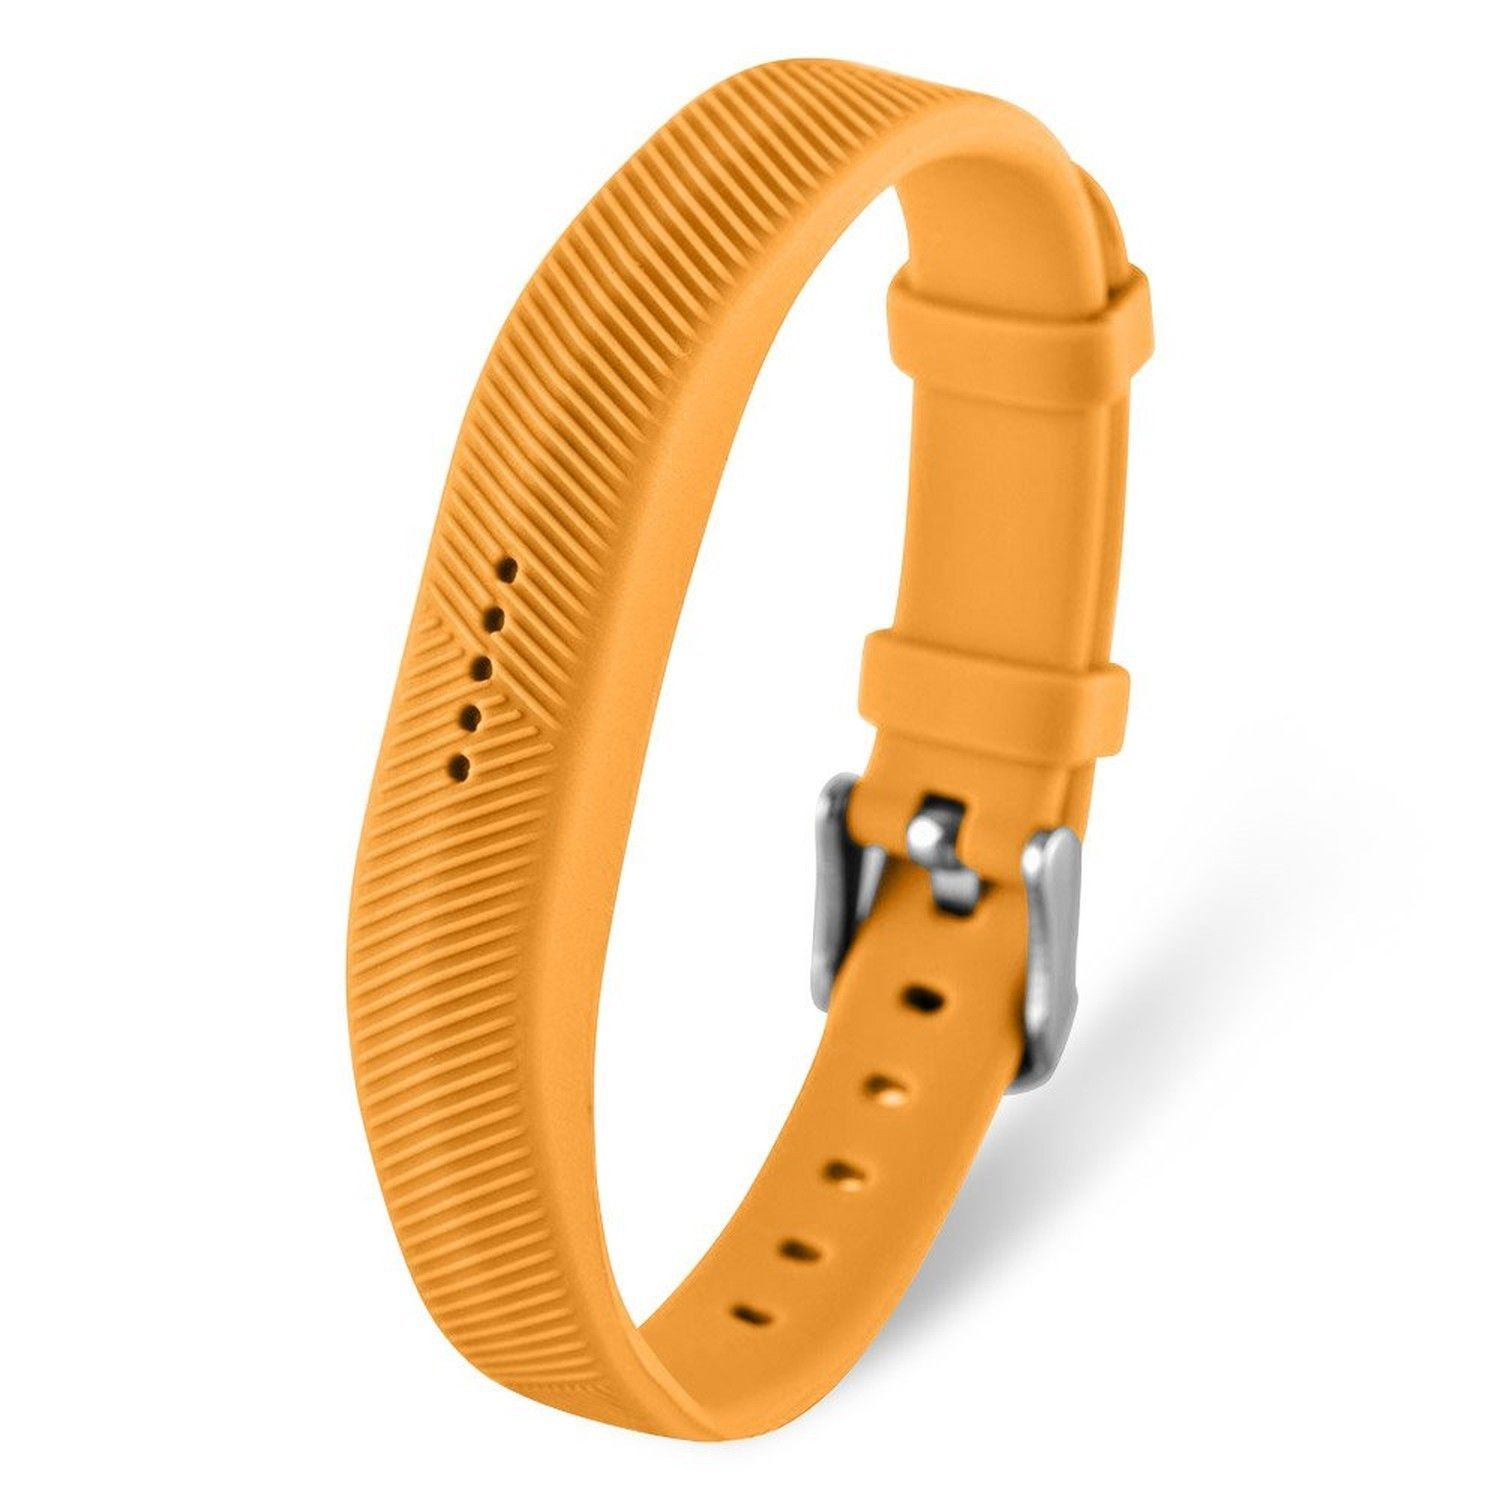 product online bracelet wristband cancer band silicone wrist shop uk research orange